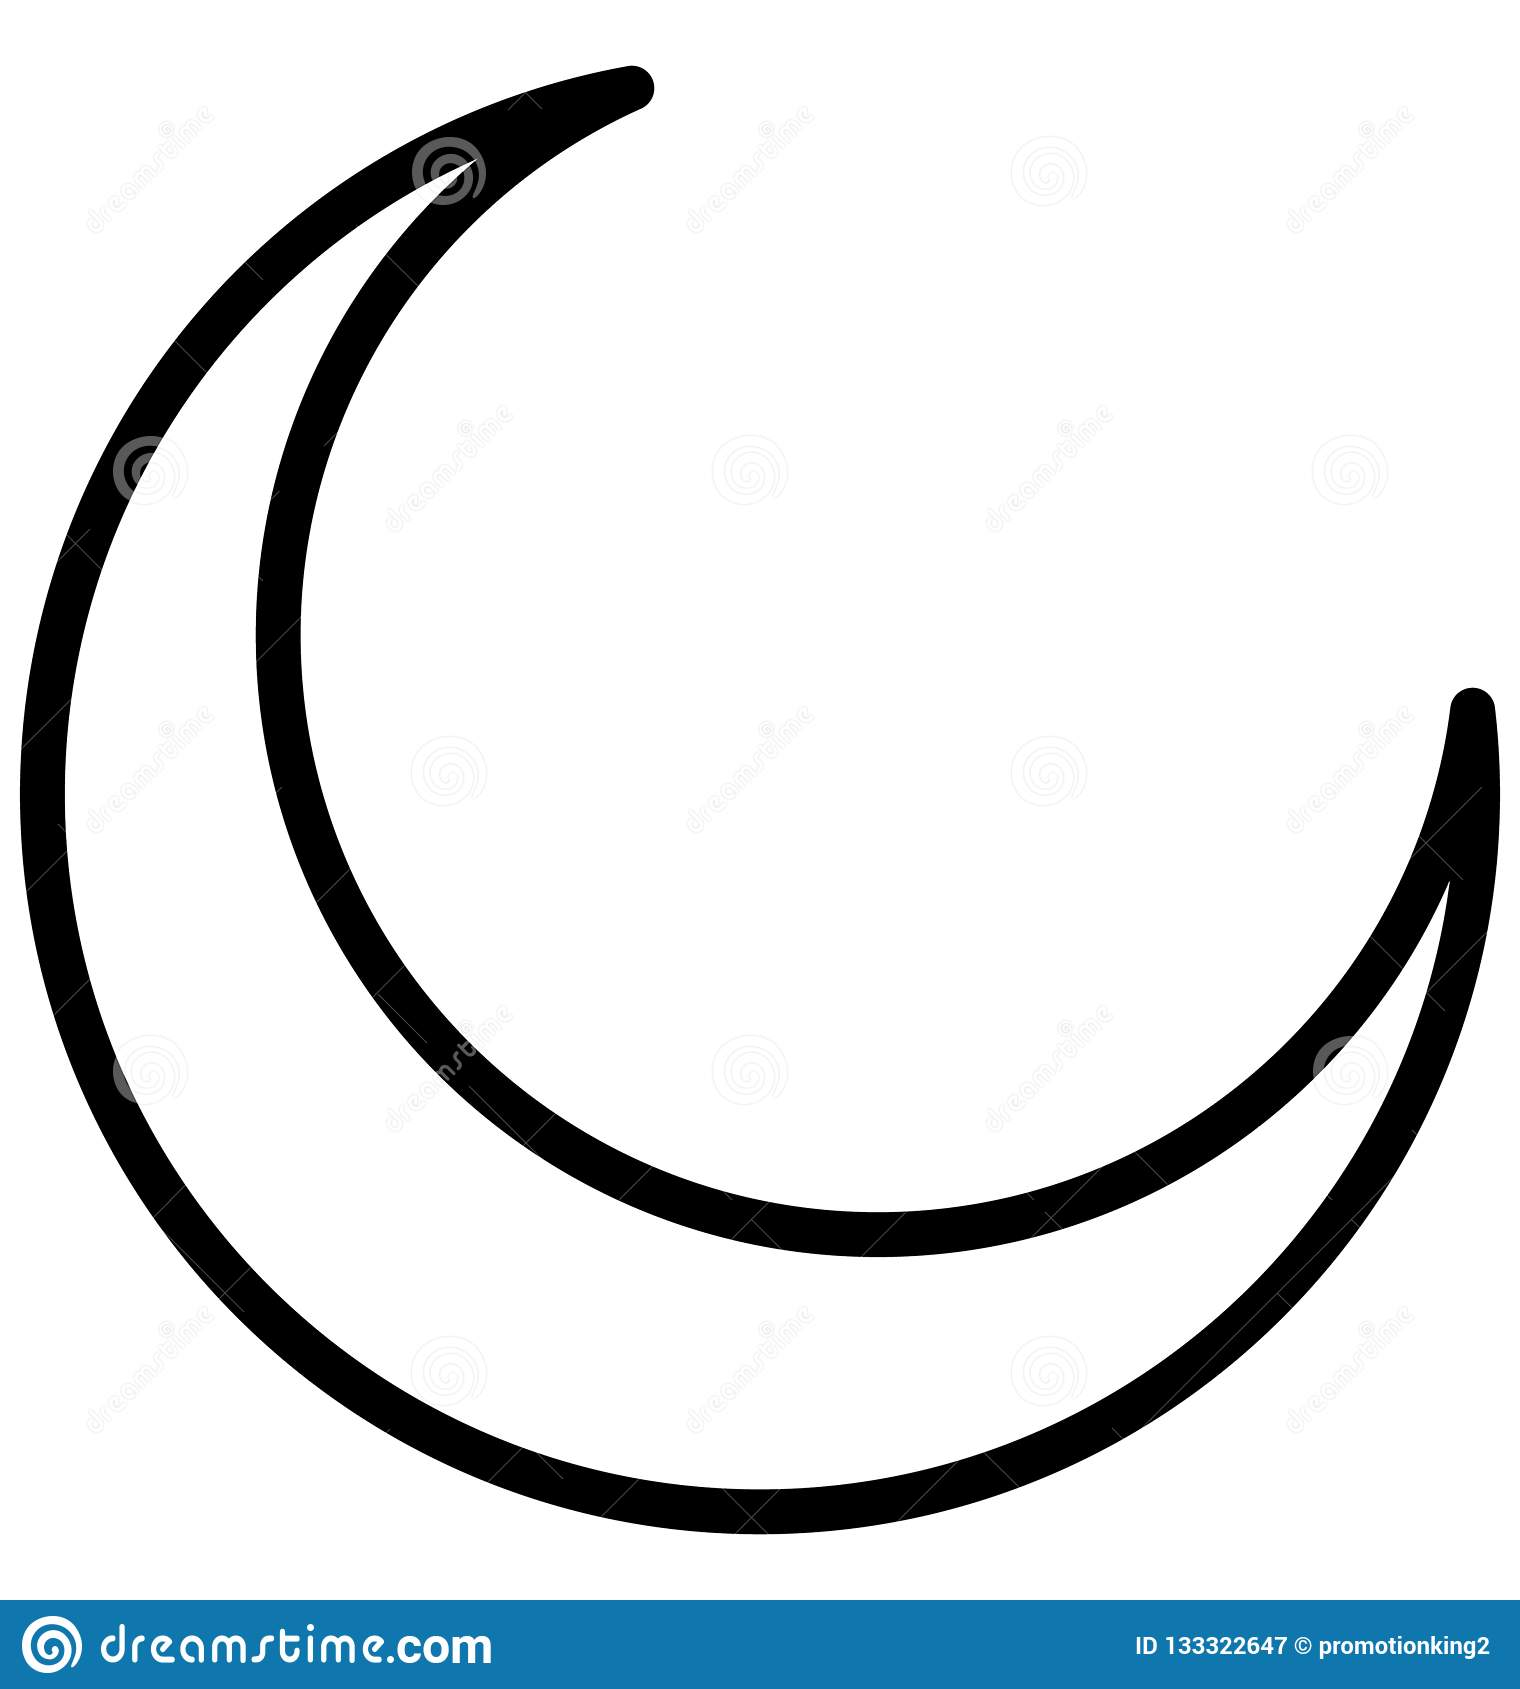 half moon stock illustrations 9 836 half moon stock illustrations vectors clipart dreamstime https www dreamstime com crescent half moon isolated vector icon can be easily modified edited crescent half moon isolated vector icon can be image133322647